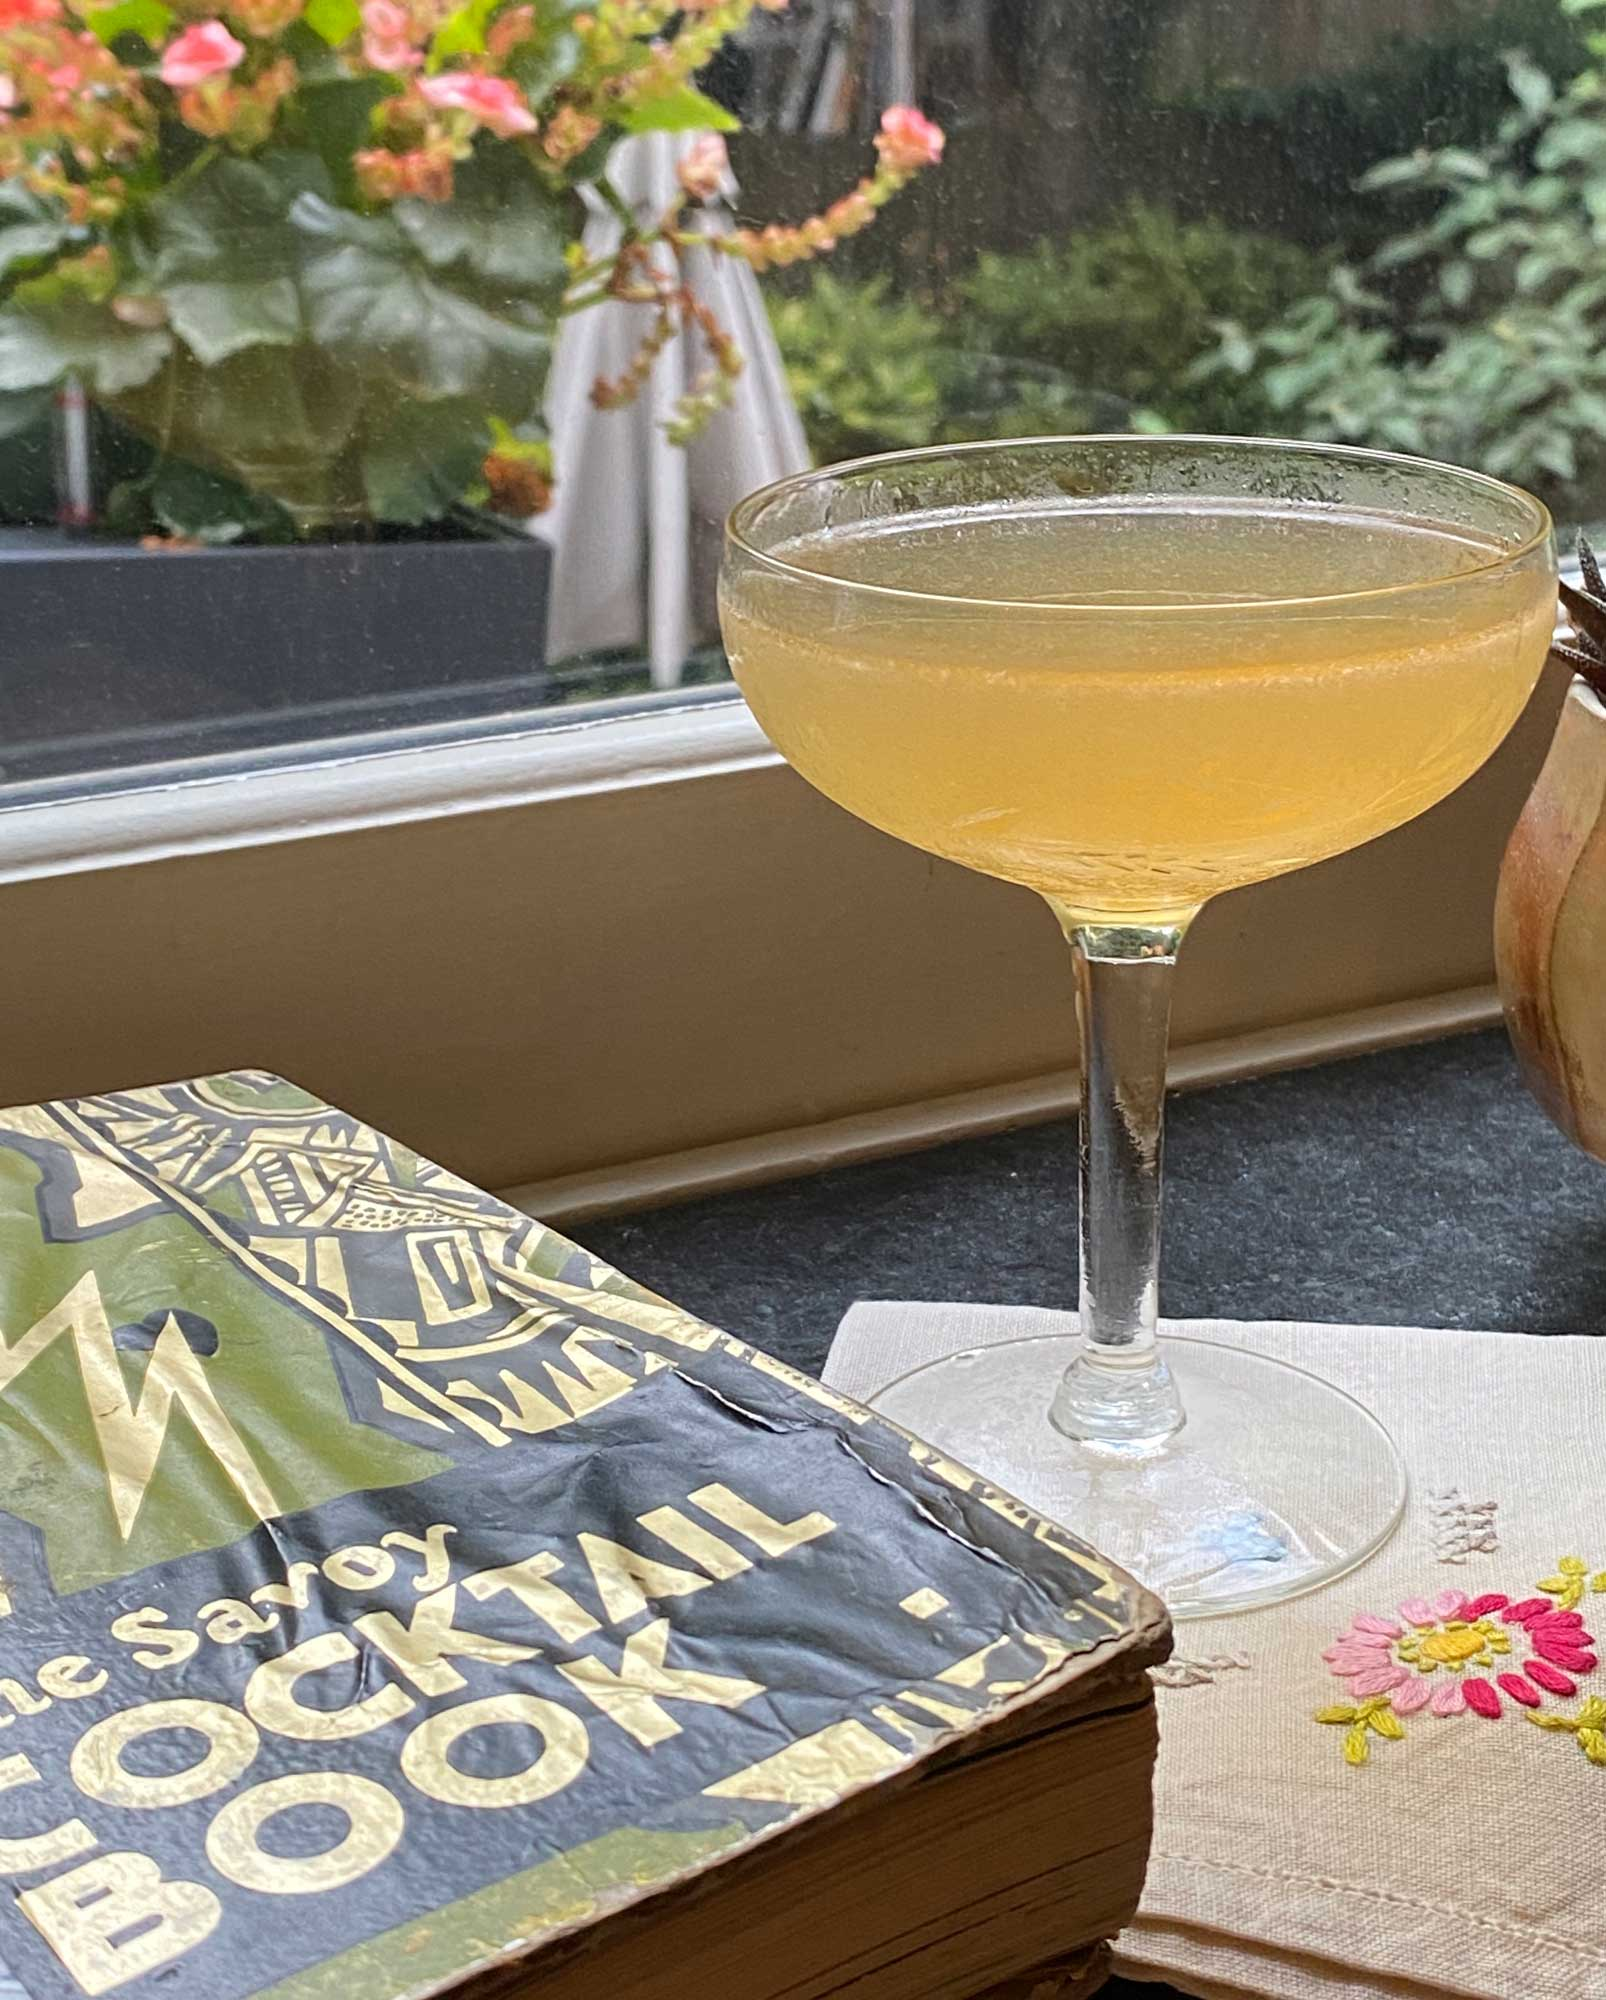 An example of the Improved Culross, the mixed drink (cocktail) featuring Rothman & Winter Orchard Apricot Liqueur, rhum agricole blanc, Cocchi Americano Bianco, and lemon juice; photo by Martin Doudoroff